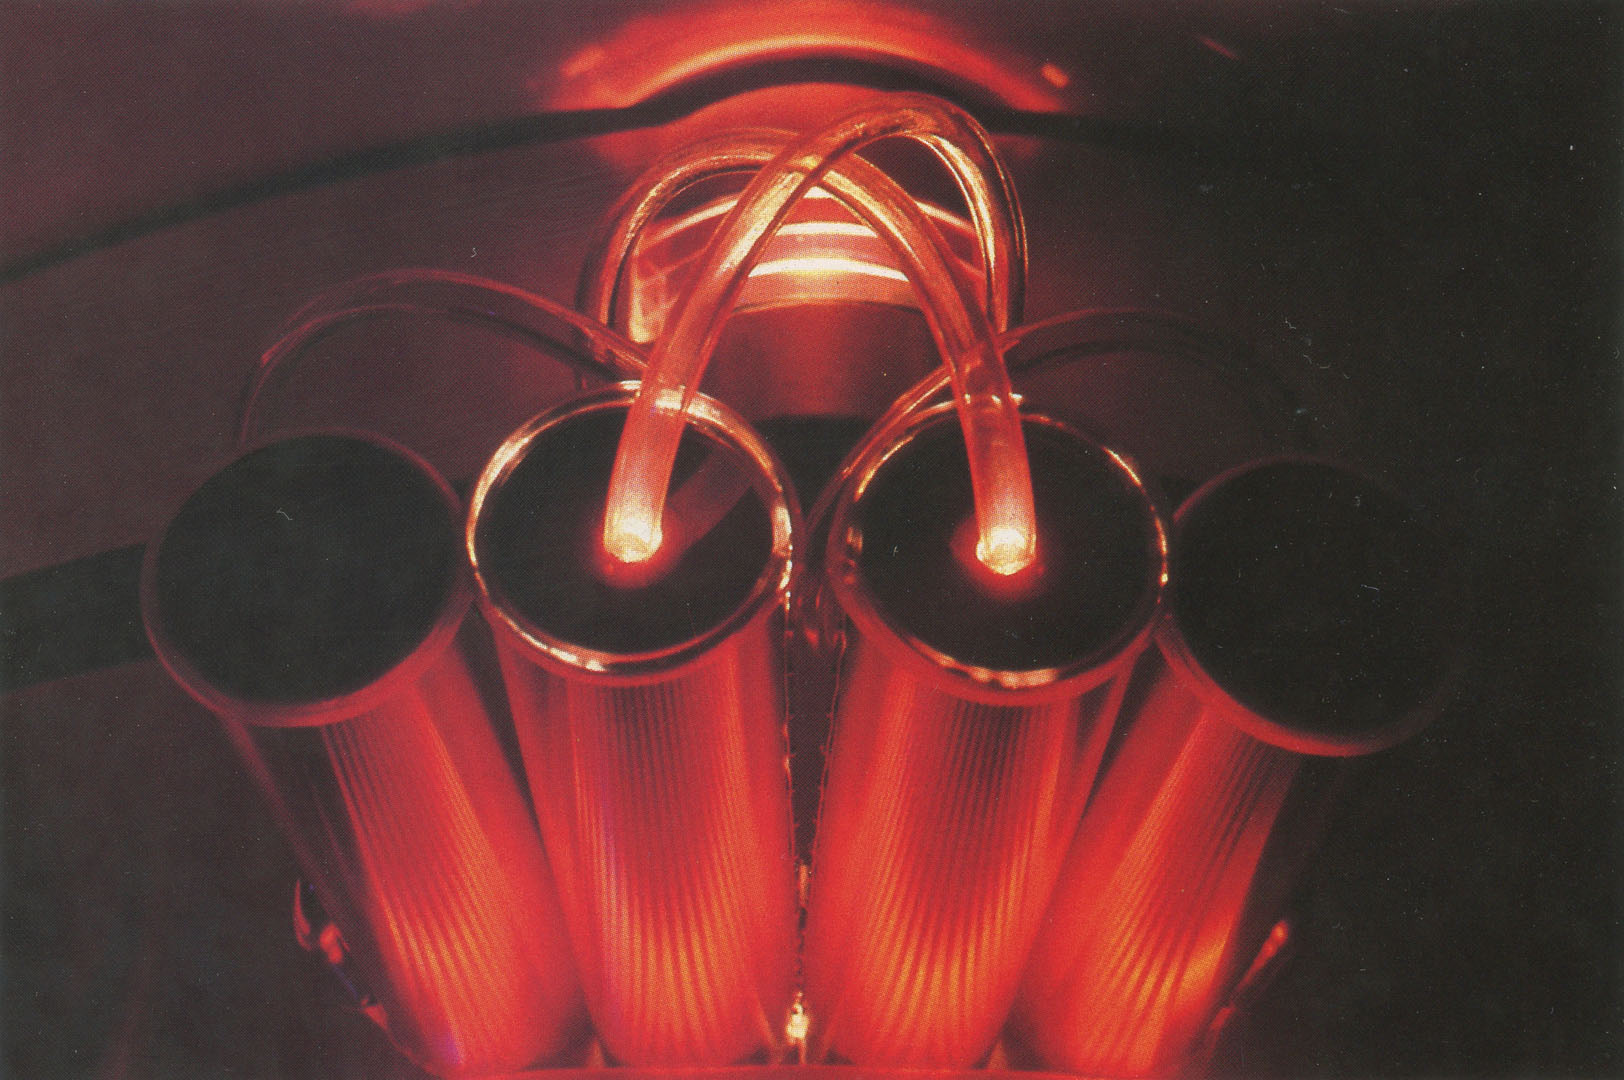 ©1985, Marsha Nygaard, Computer Orchestrated Light, Glass and Metal Sculptures